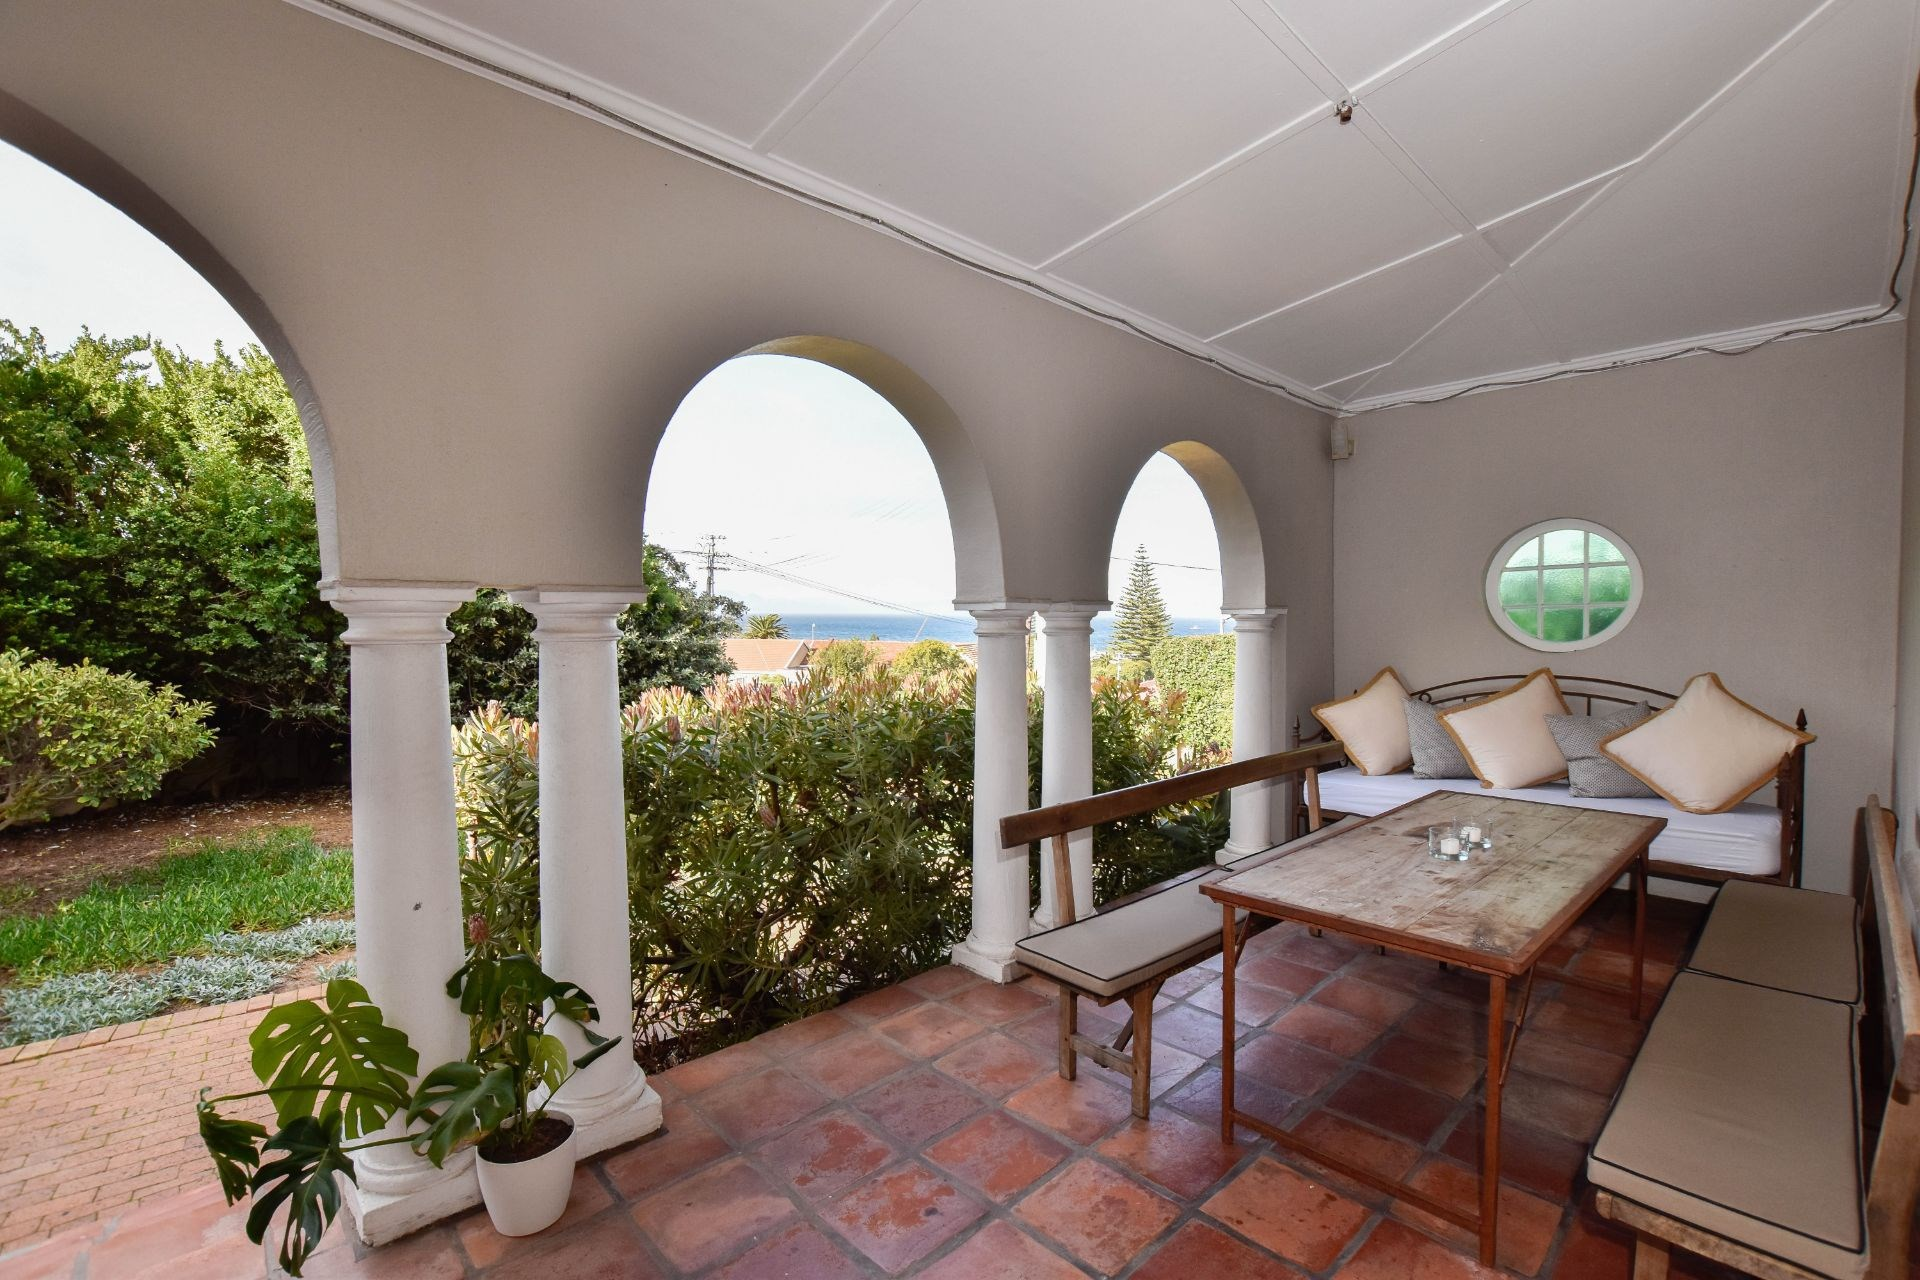 6 Bedroom House for Sale in Kalk Bay